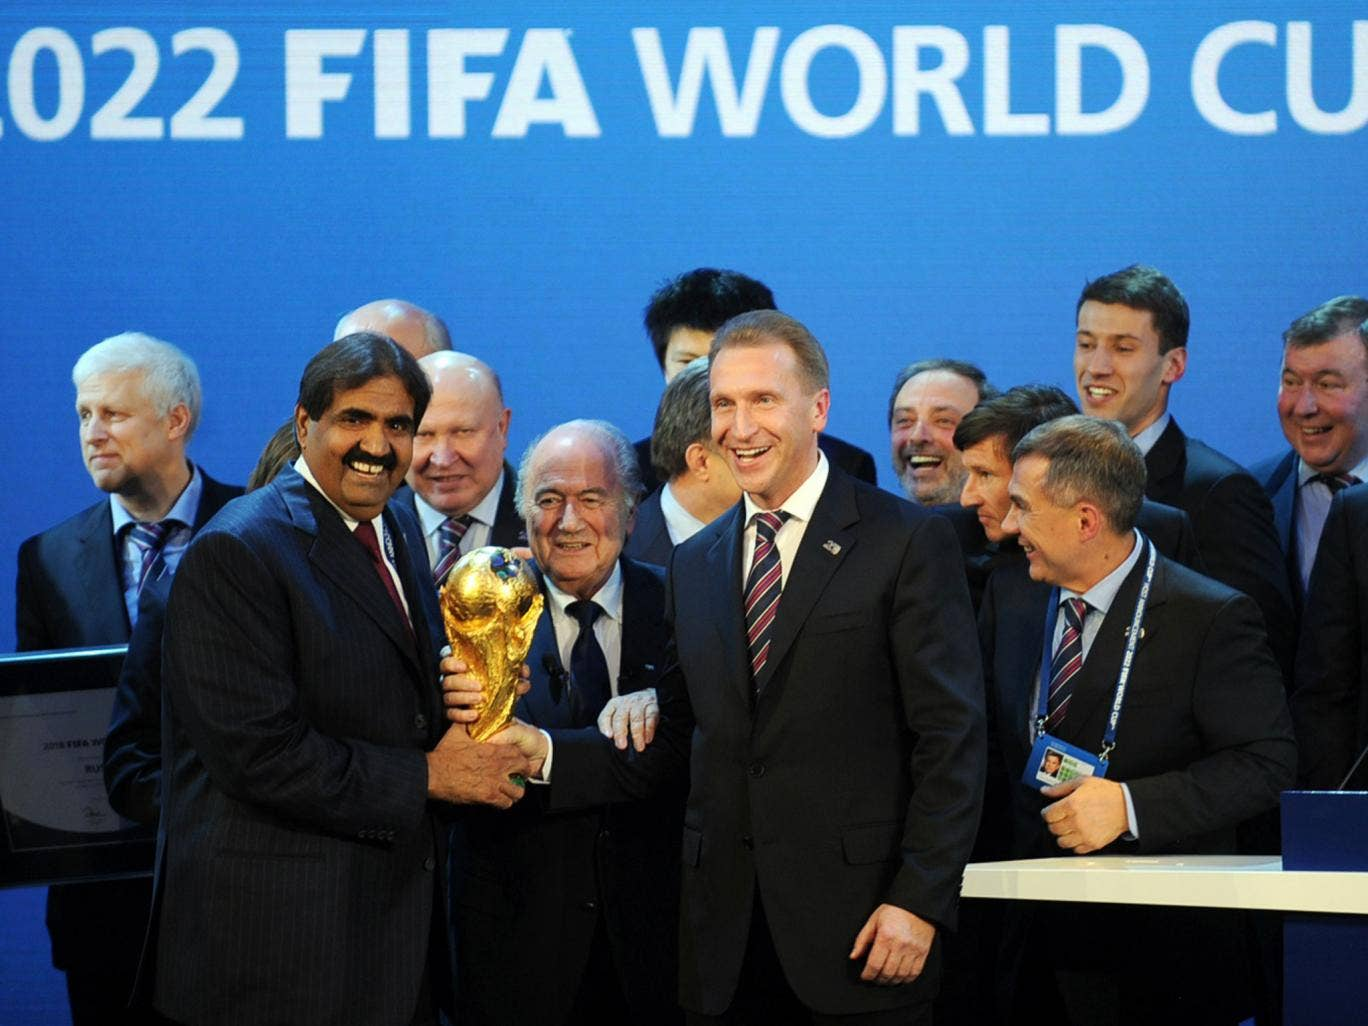 Emir of the State of Qatar Sheikh Hamad bin Khalifa Al-Thani (left) and Fifa President Sepp Blatter pose with the World Cup after the Qatar announcement in 2010